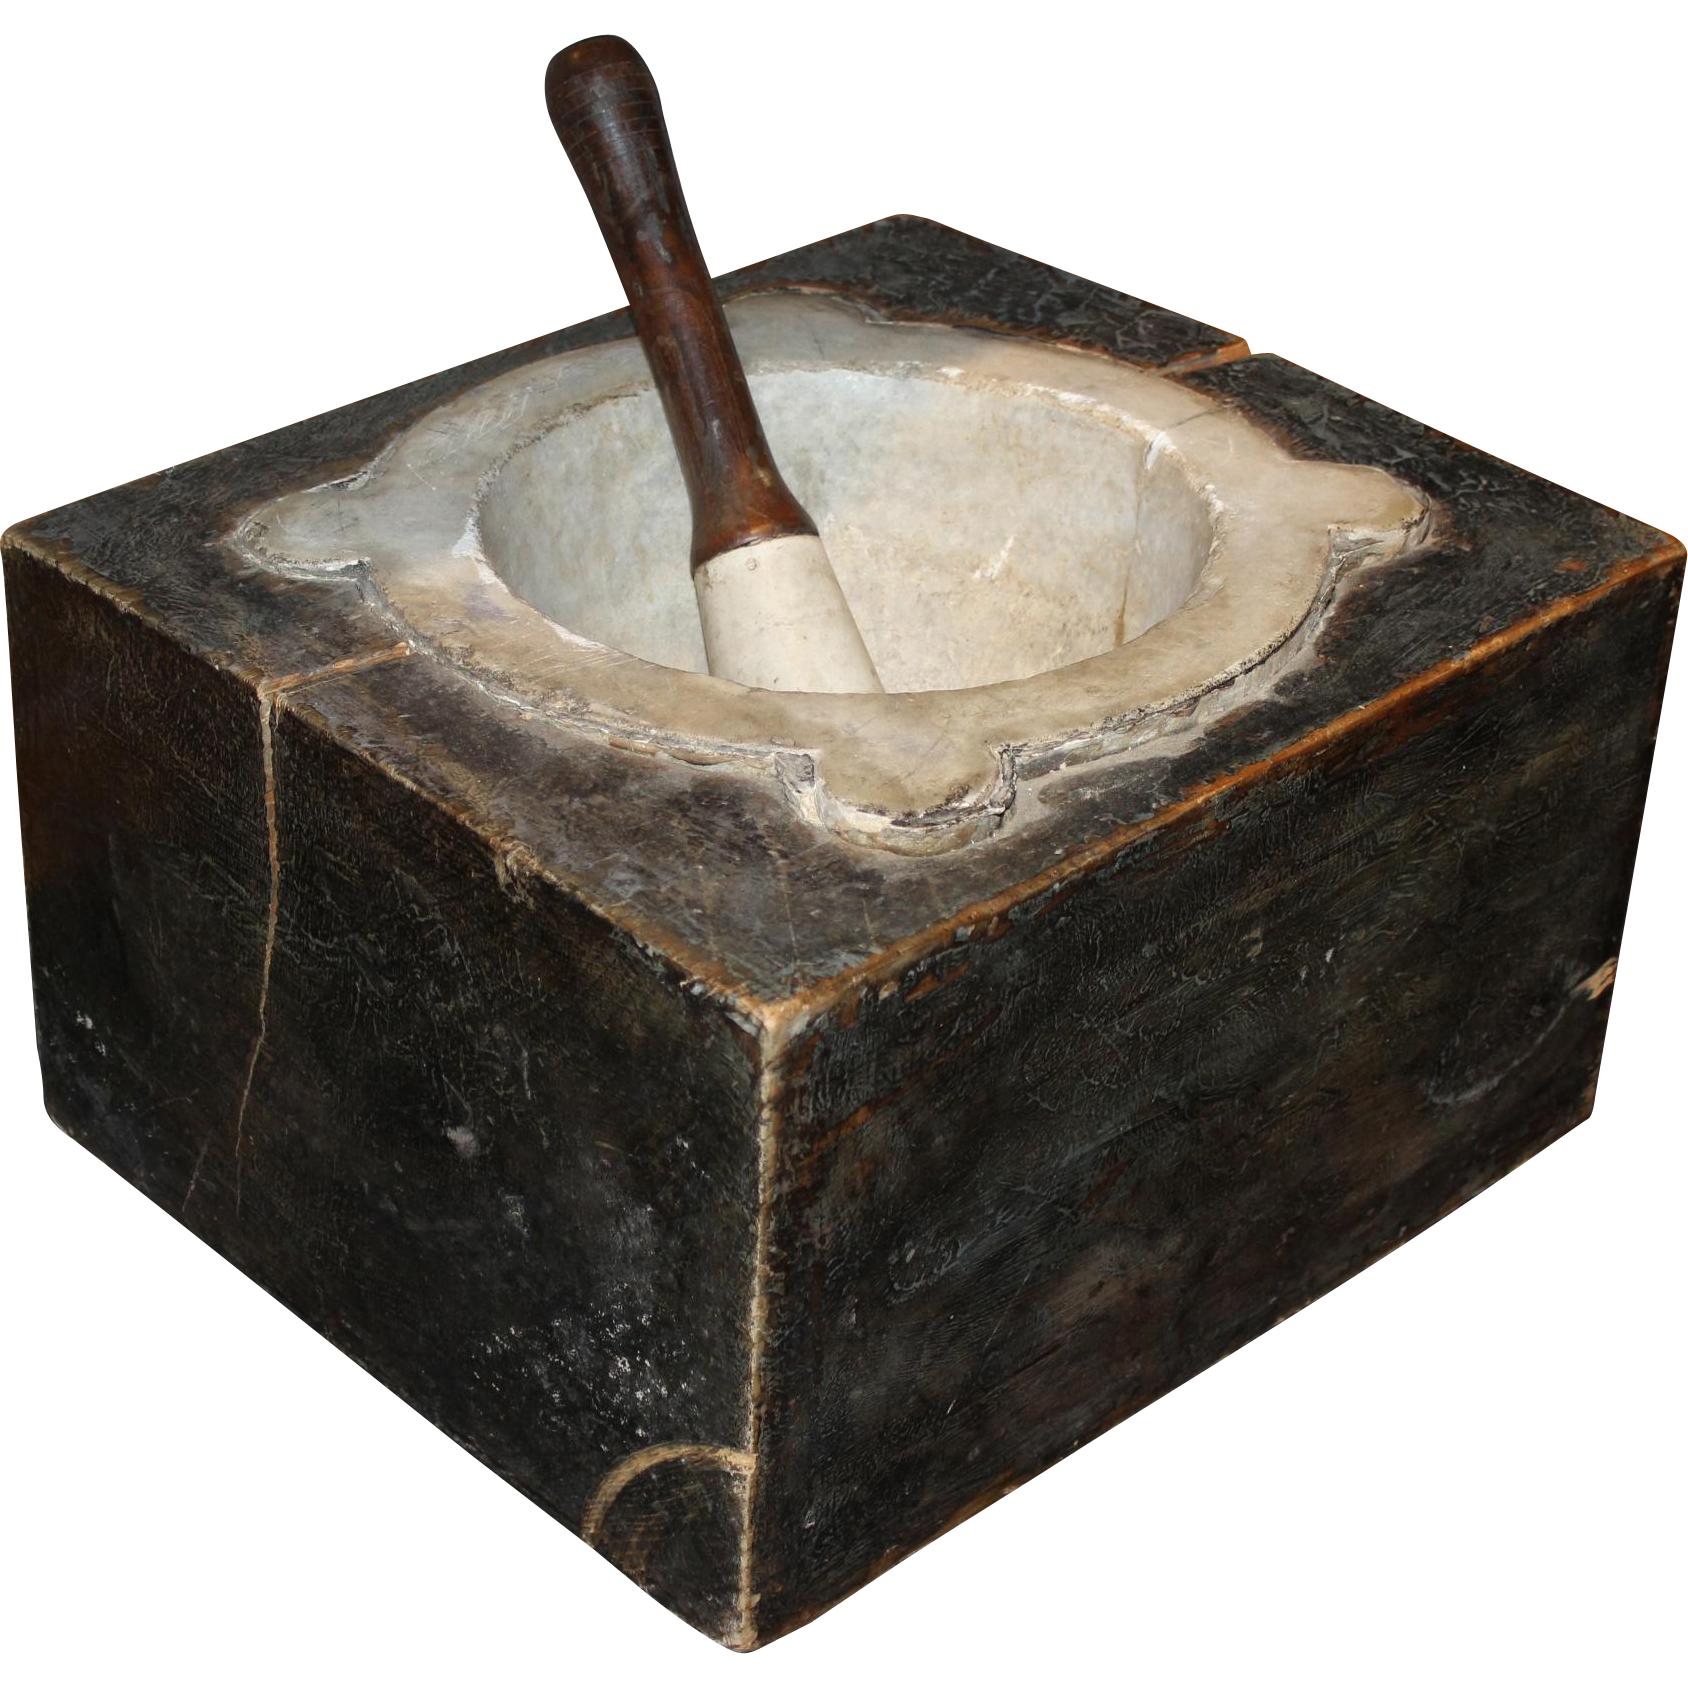 19th c Large Stone & Wood Mortar & Pestle